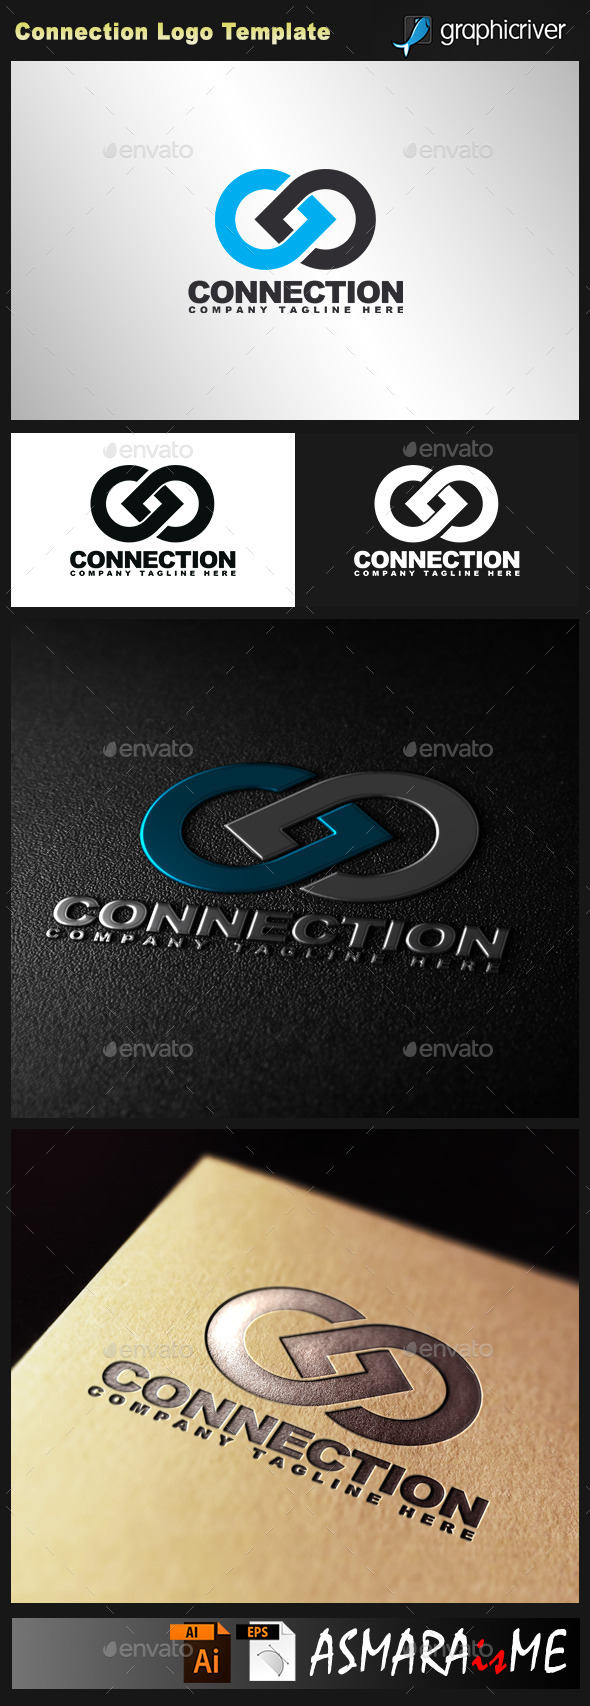 Connection Logo - Abstract Logo Templates